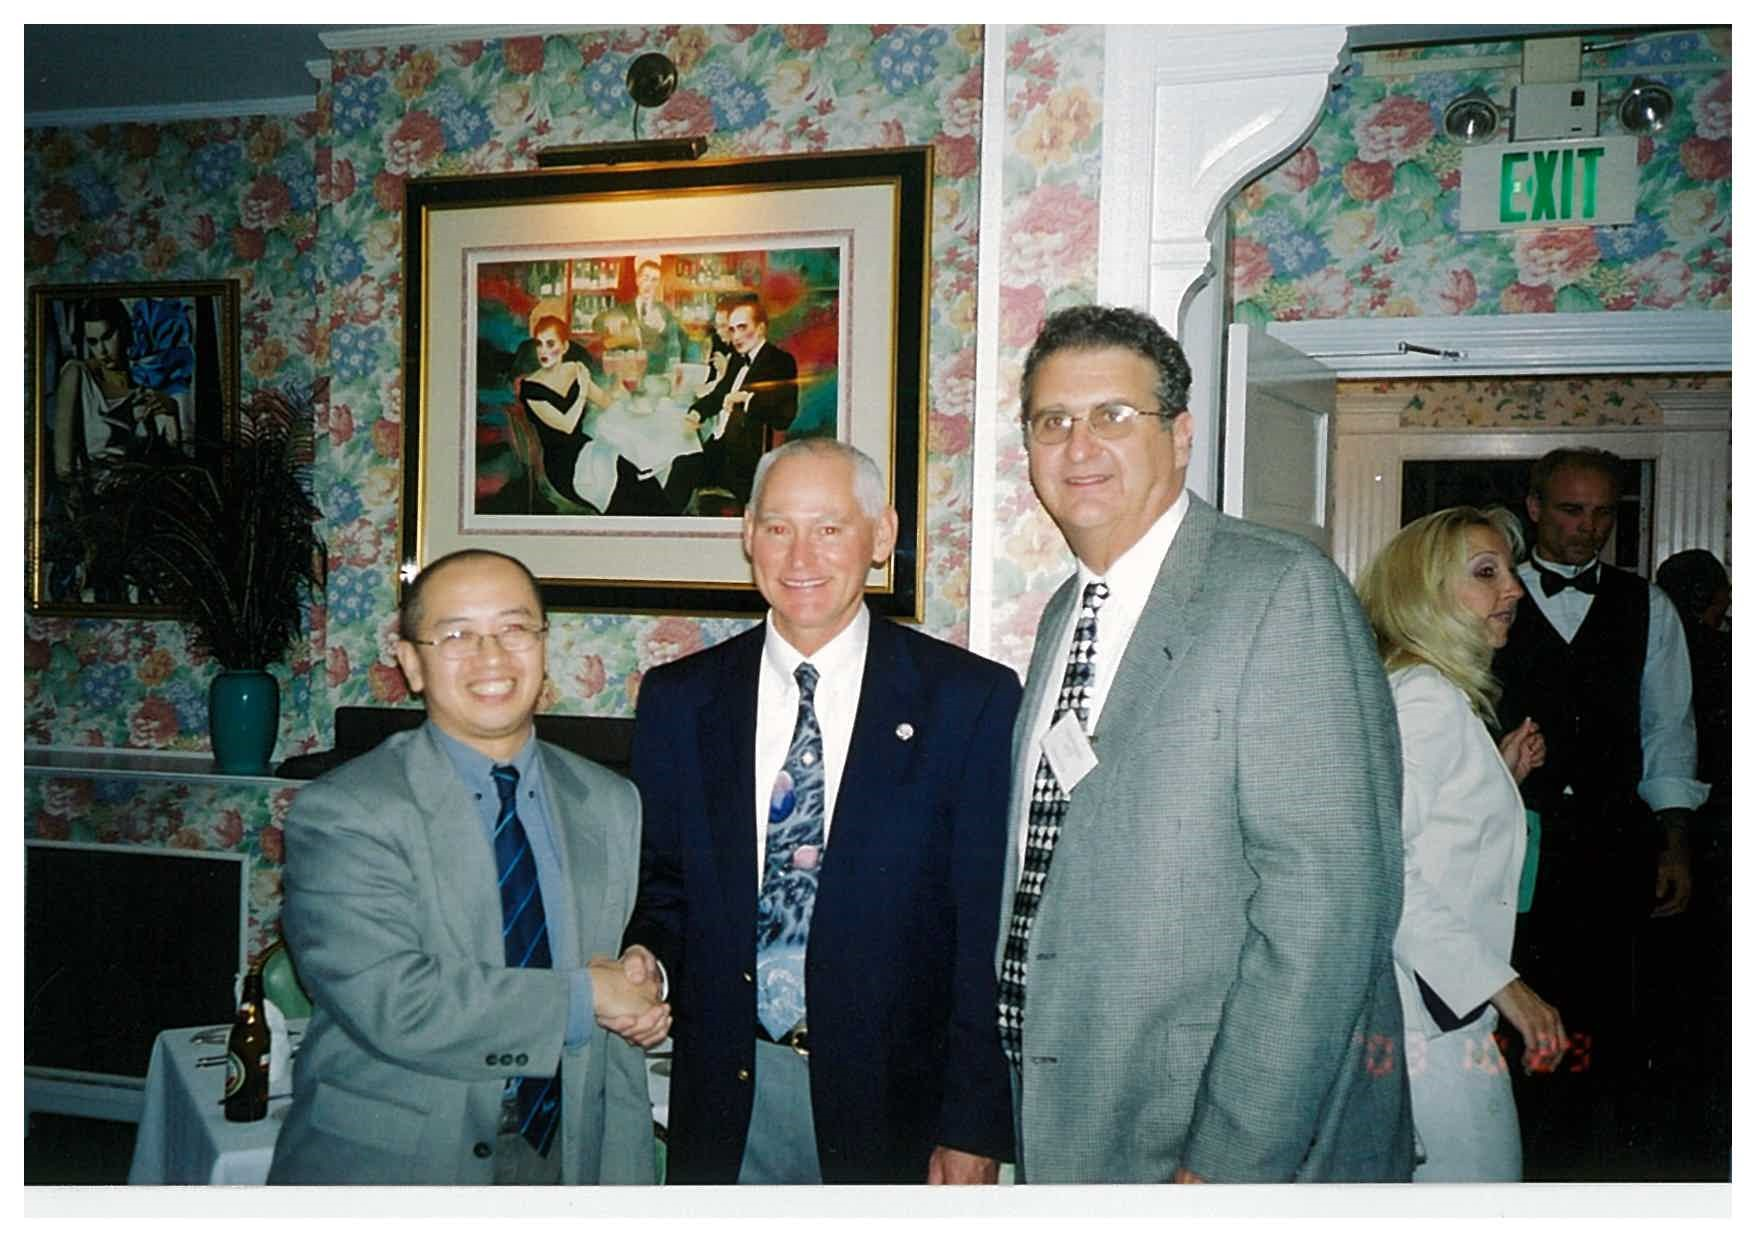 William (left) meeting Astronaut Michael Mullane (middle) in Lockheed Martin Users' Conference in 2003